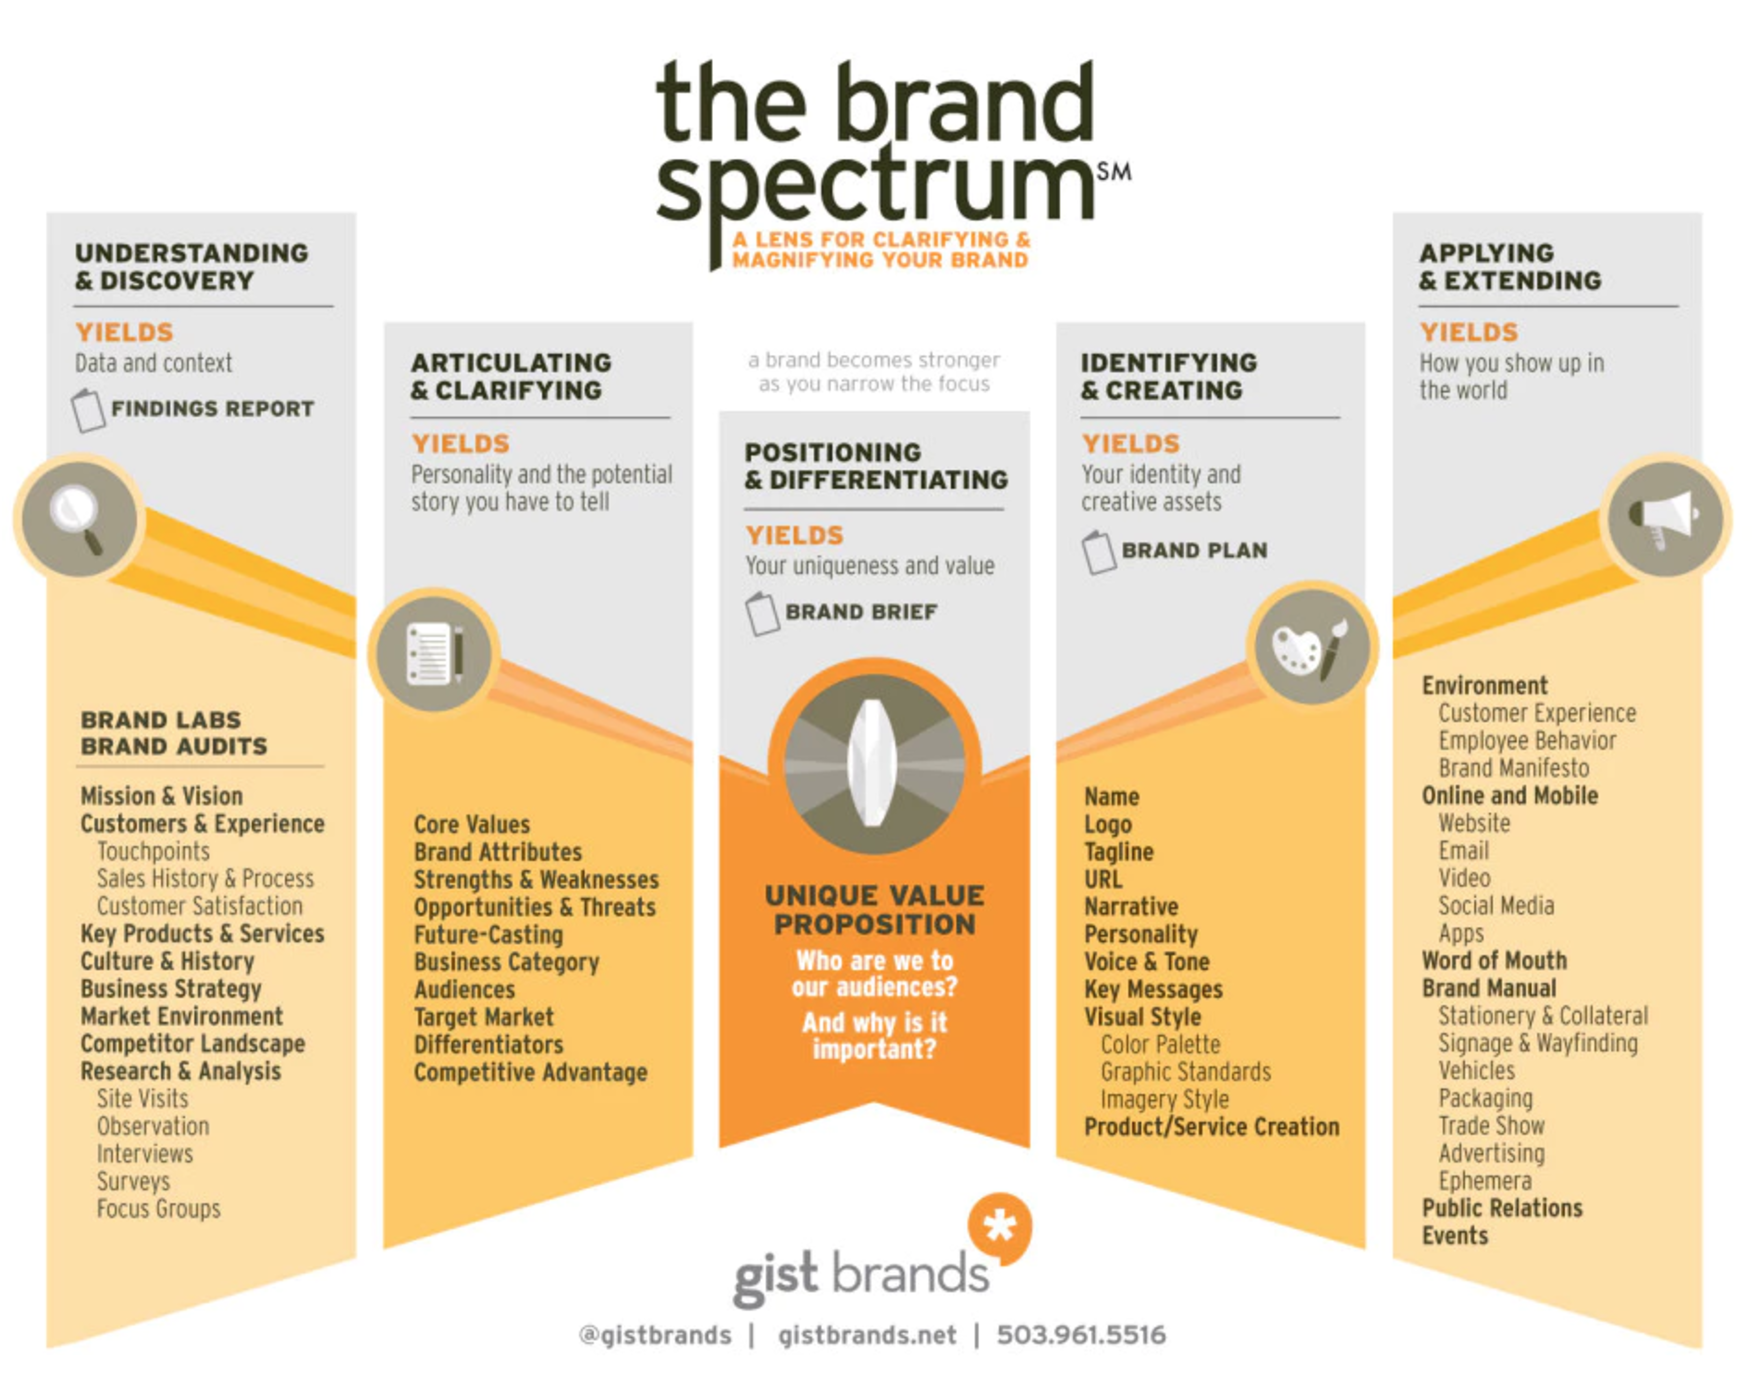 the-brand-spectrum-by-gist